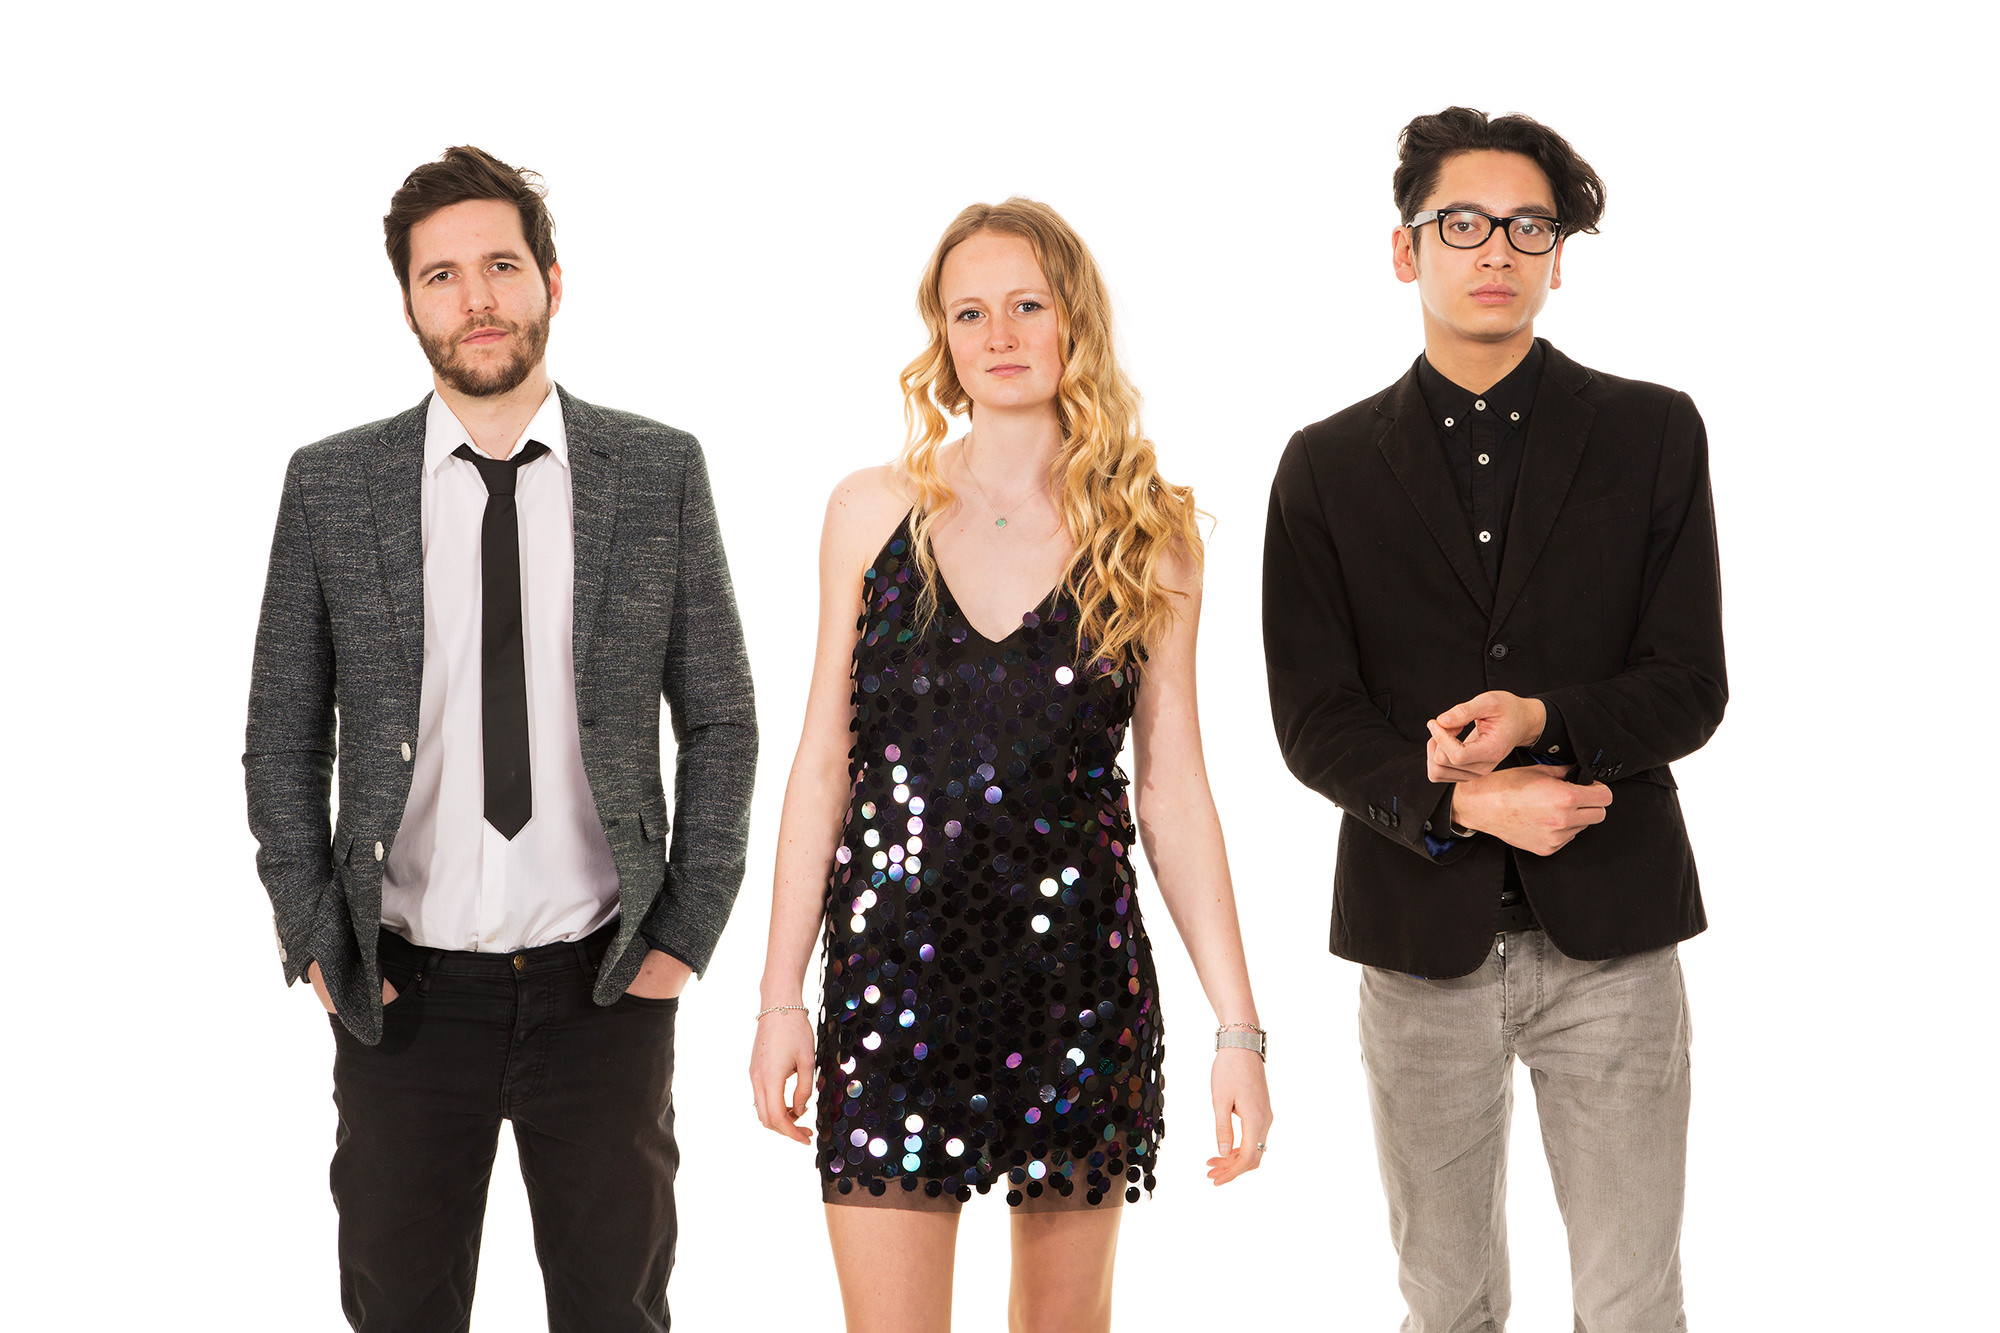 Feel Good - 3-piece band for weddings, parties and functions from Uptown Music